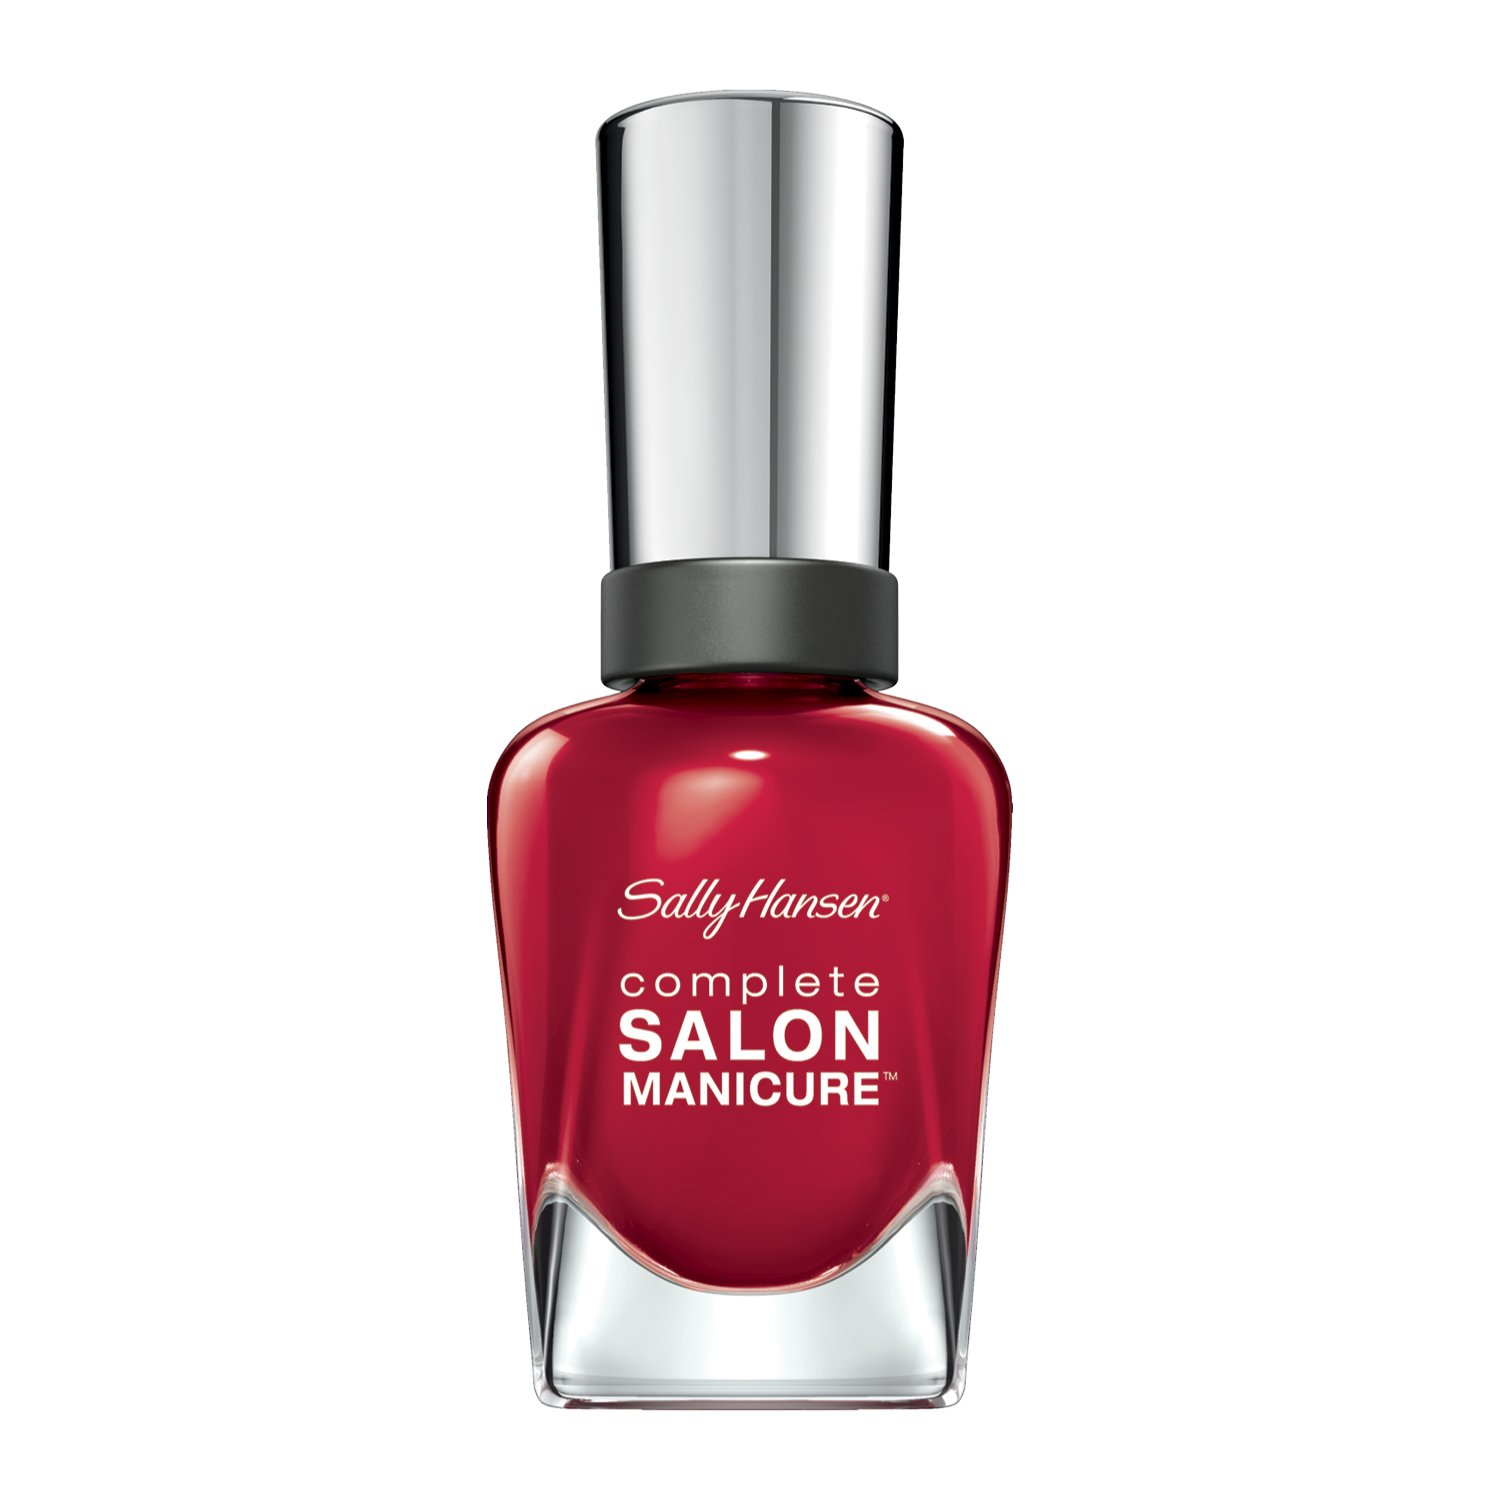 Sally Hansen Complete Salon Manicure Nail Polish, Red My Lips, 0.5 Fluid Ounce